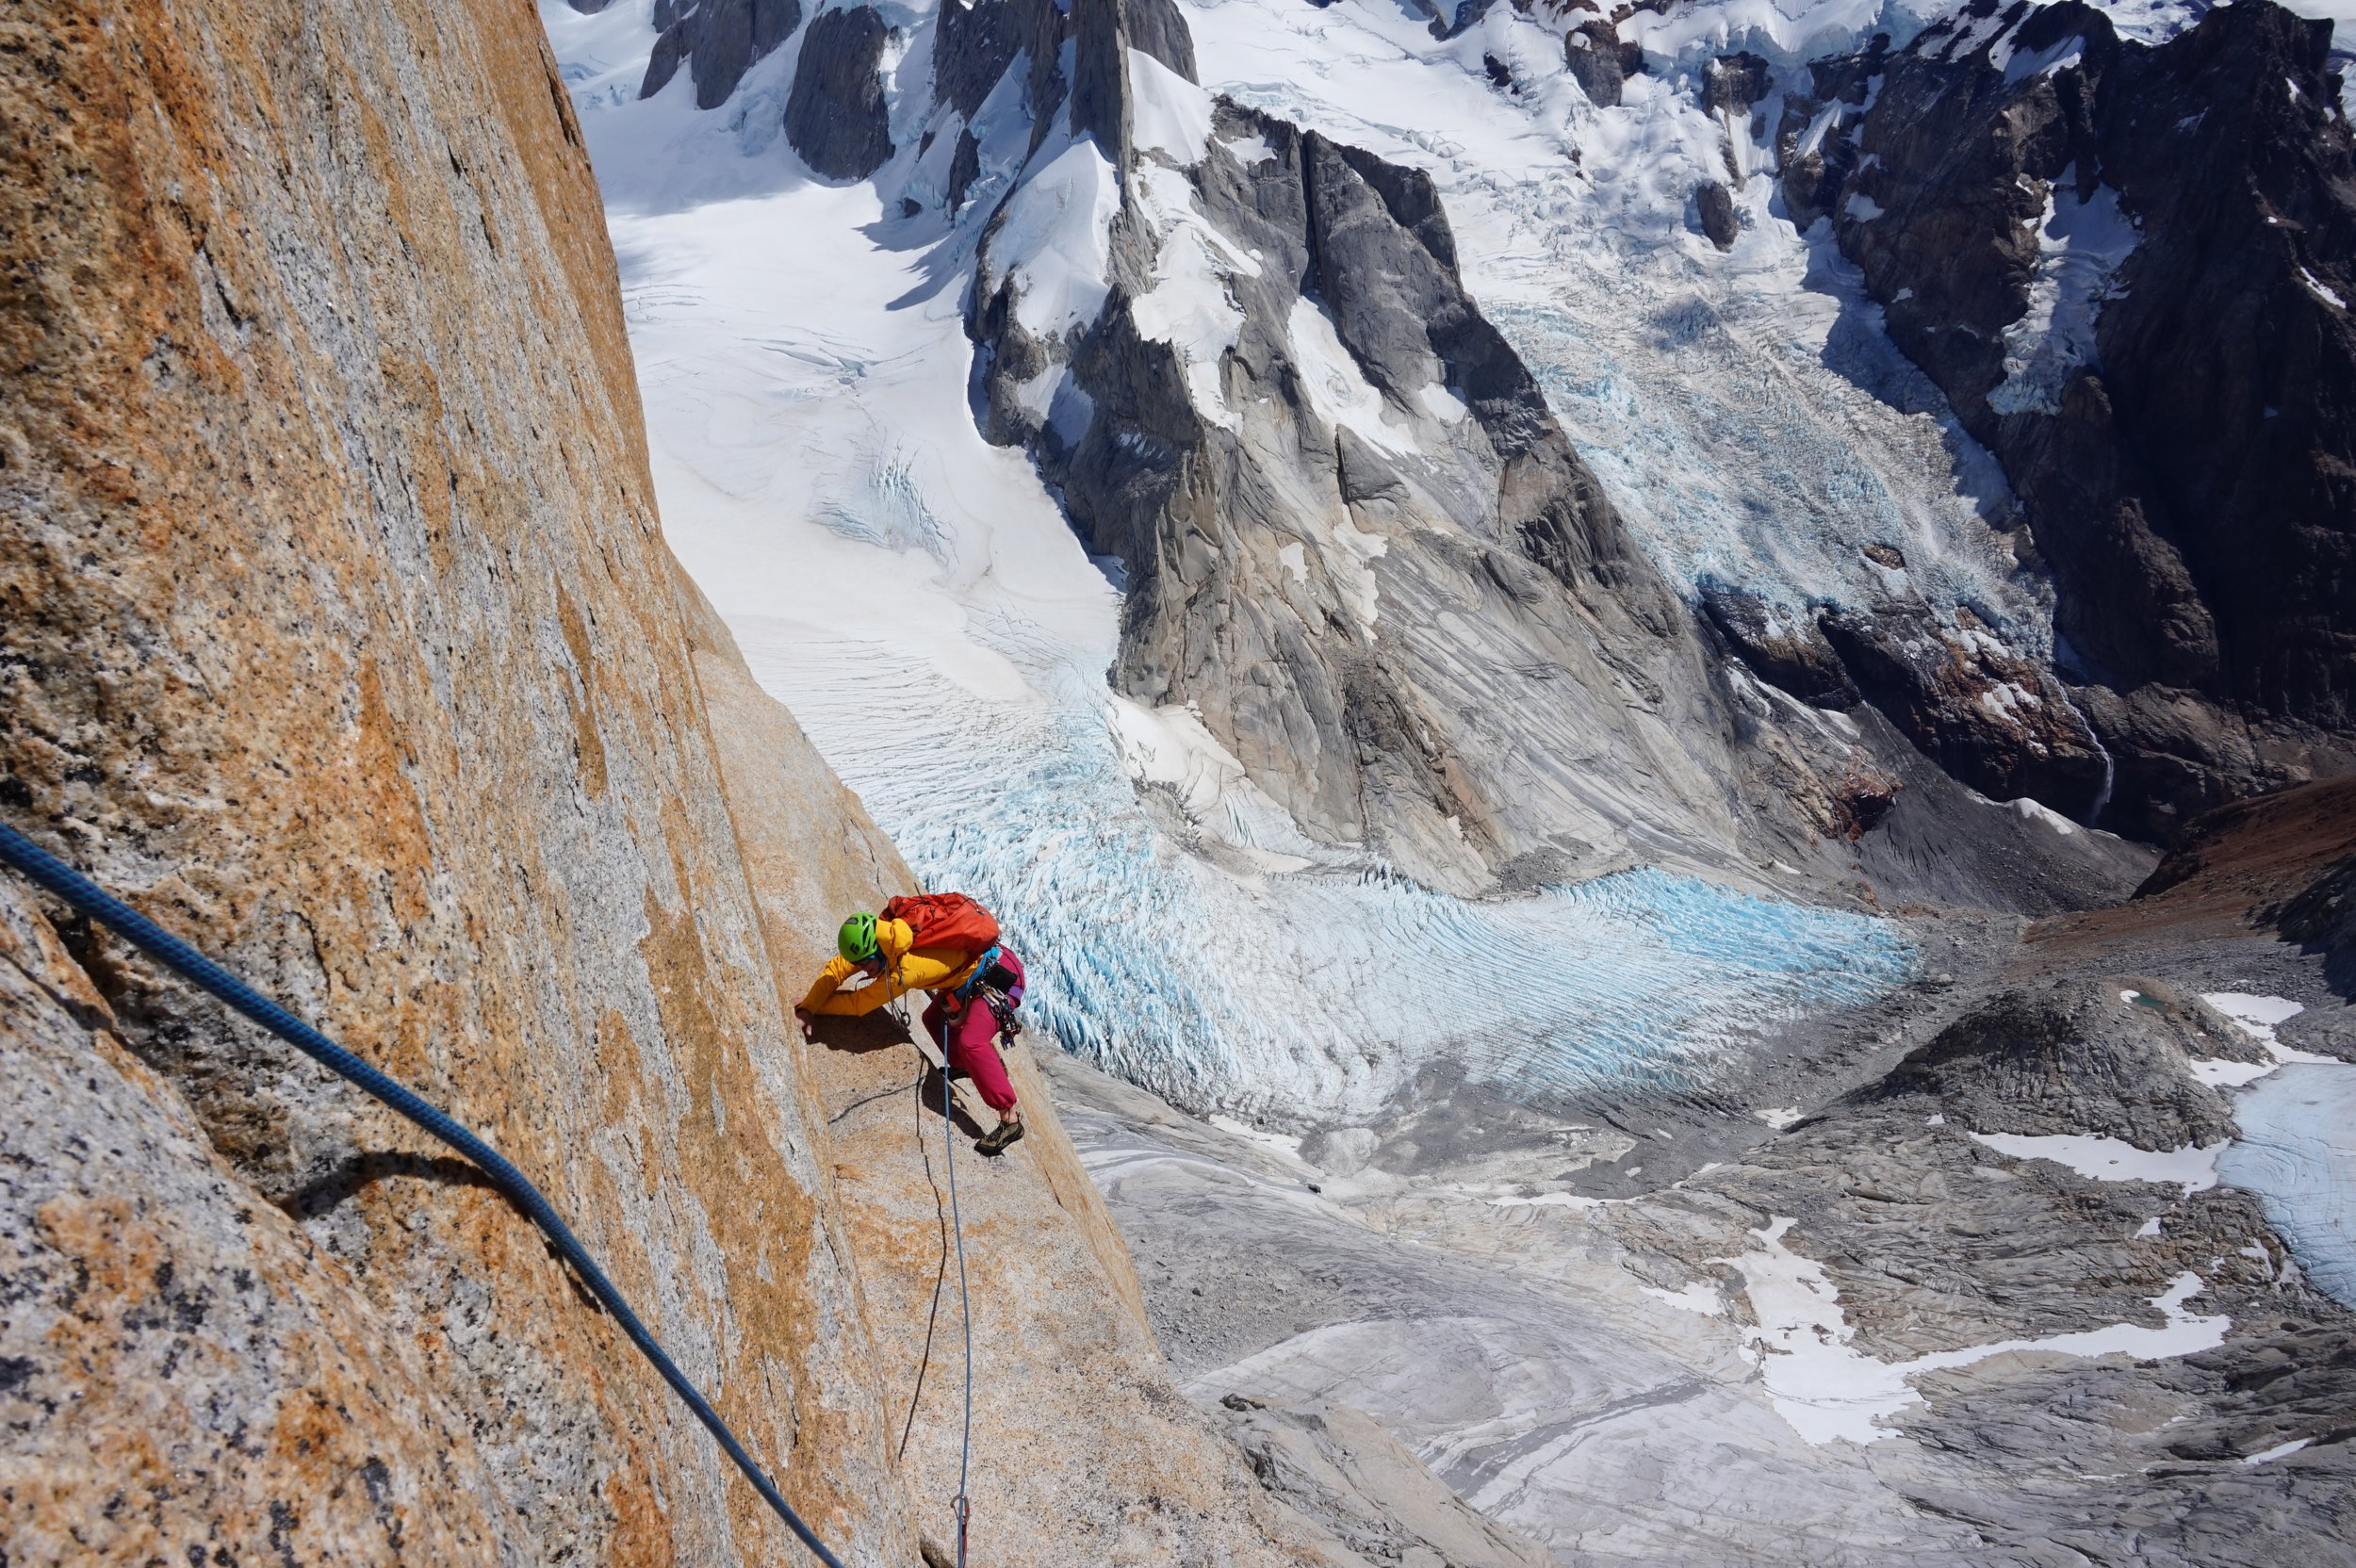 Michelle on the Fonrouge traverse. Photo by Hannah Preston.